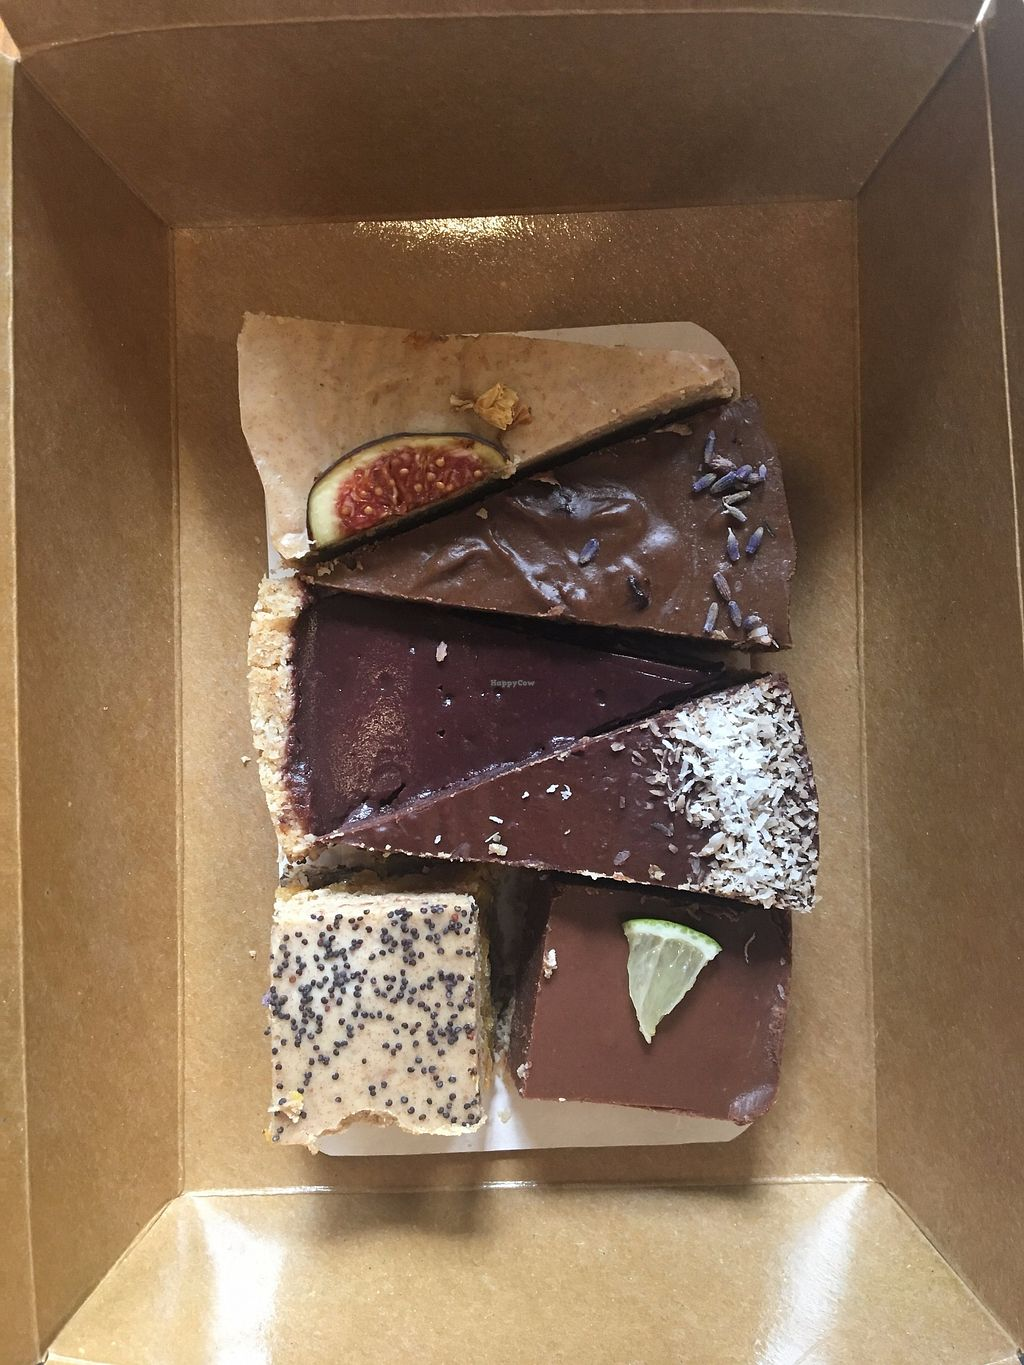 """Photo of Veggie Nyers  by <a href=""""/members/profile/tcsengusz"""">tcsengusz</a> <br/>Veggie Cake Selection Box - they have this event every other month, when you can buy a box of raw cakes of 6 for ca. 5 Euros. The September box included: lime brownie, figs and cashew, vanilla cashew with acai dressing, coconut, carob with lavender, apricot with poppy seeds.  <br/> September 20, 2017  - <a href='/contact/abuse/image/69131/306387'>Report</a>"""